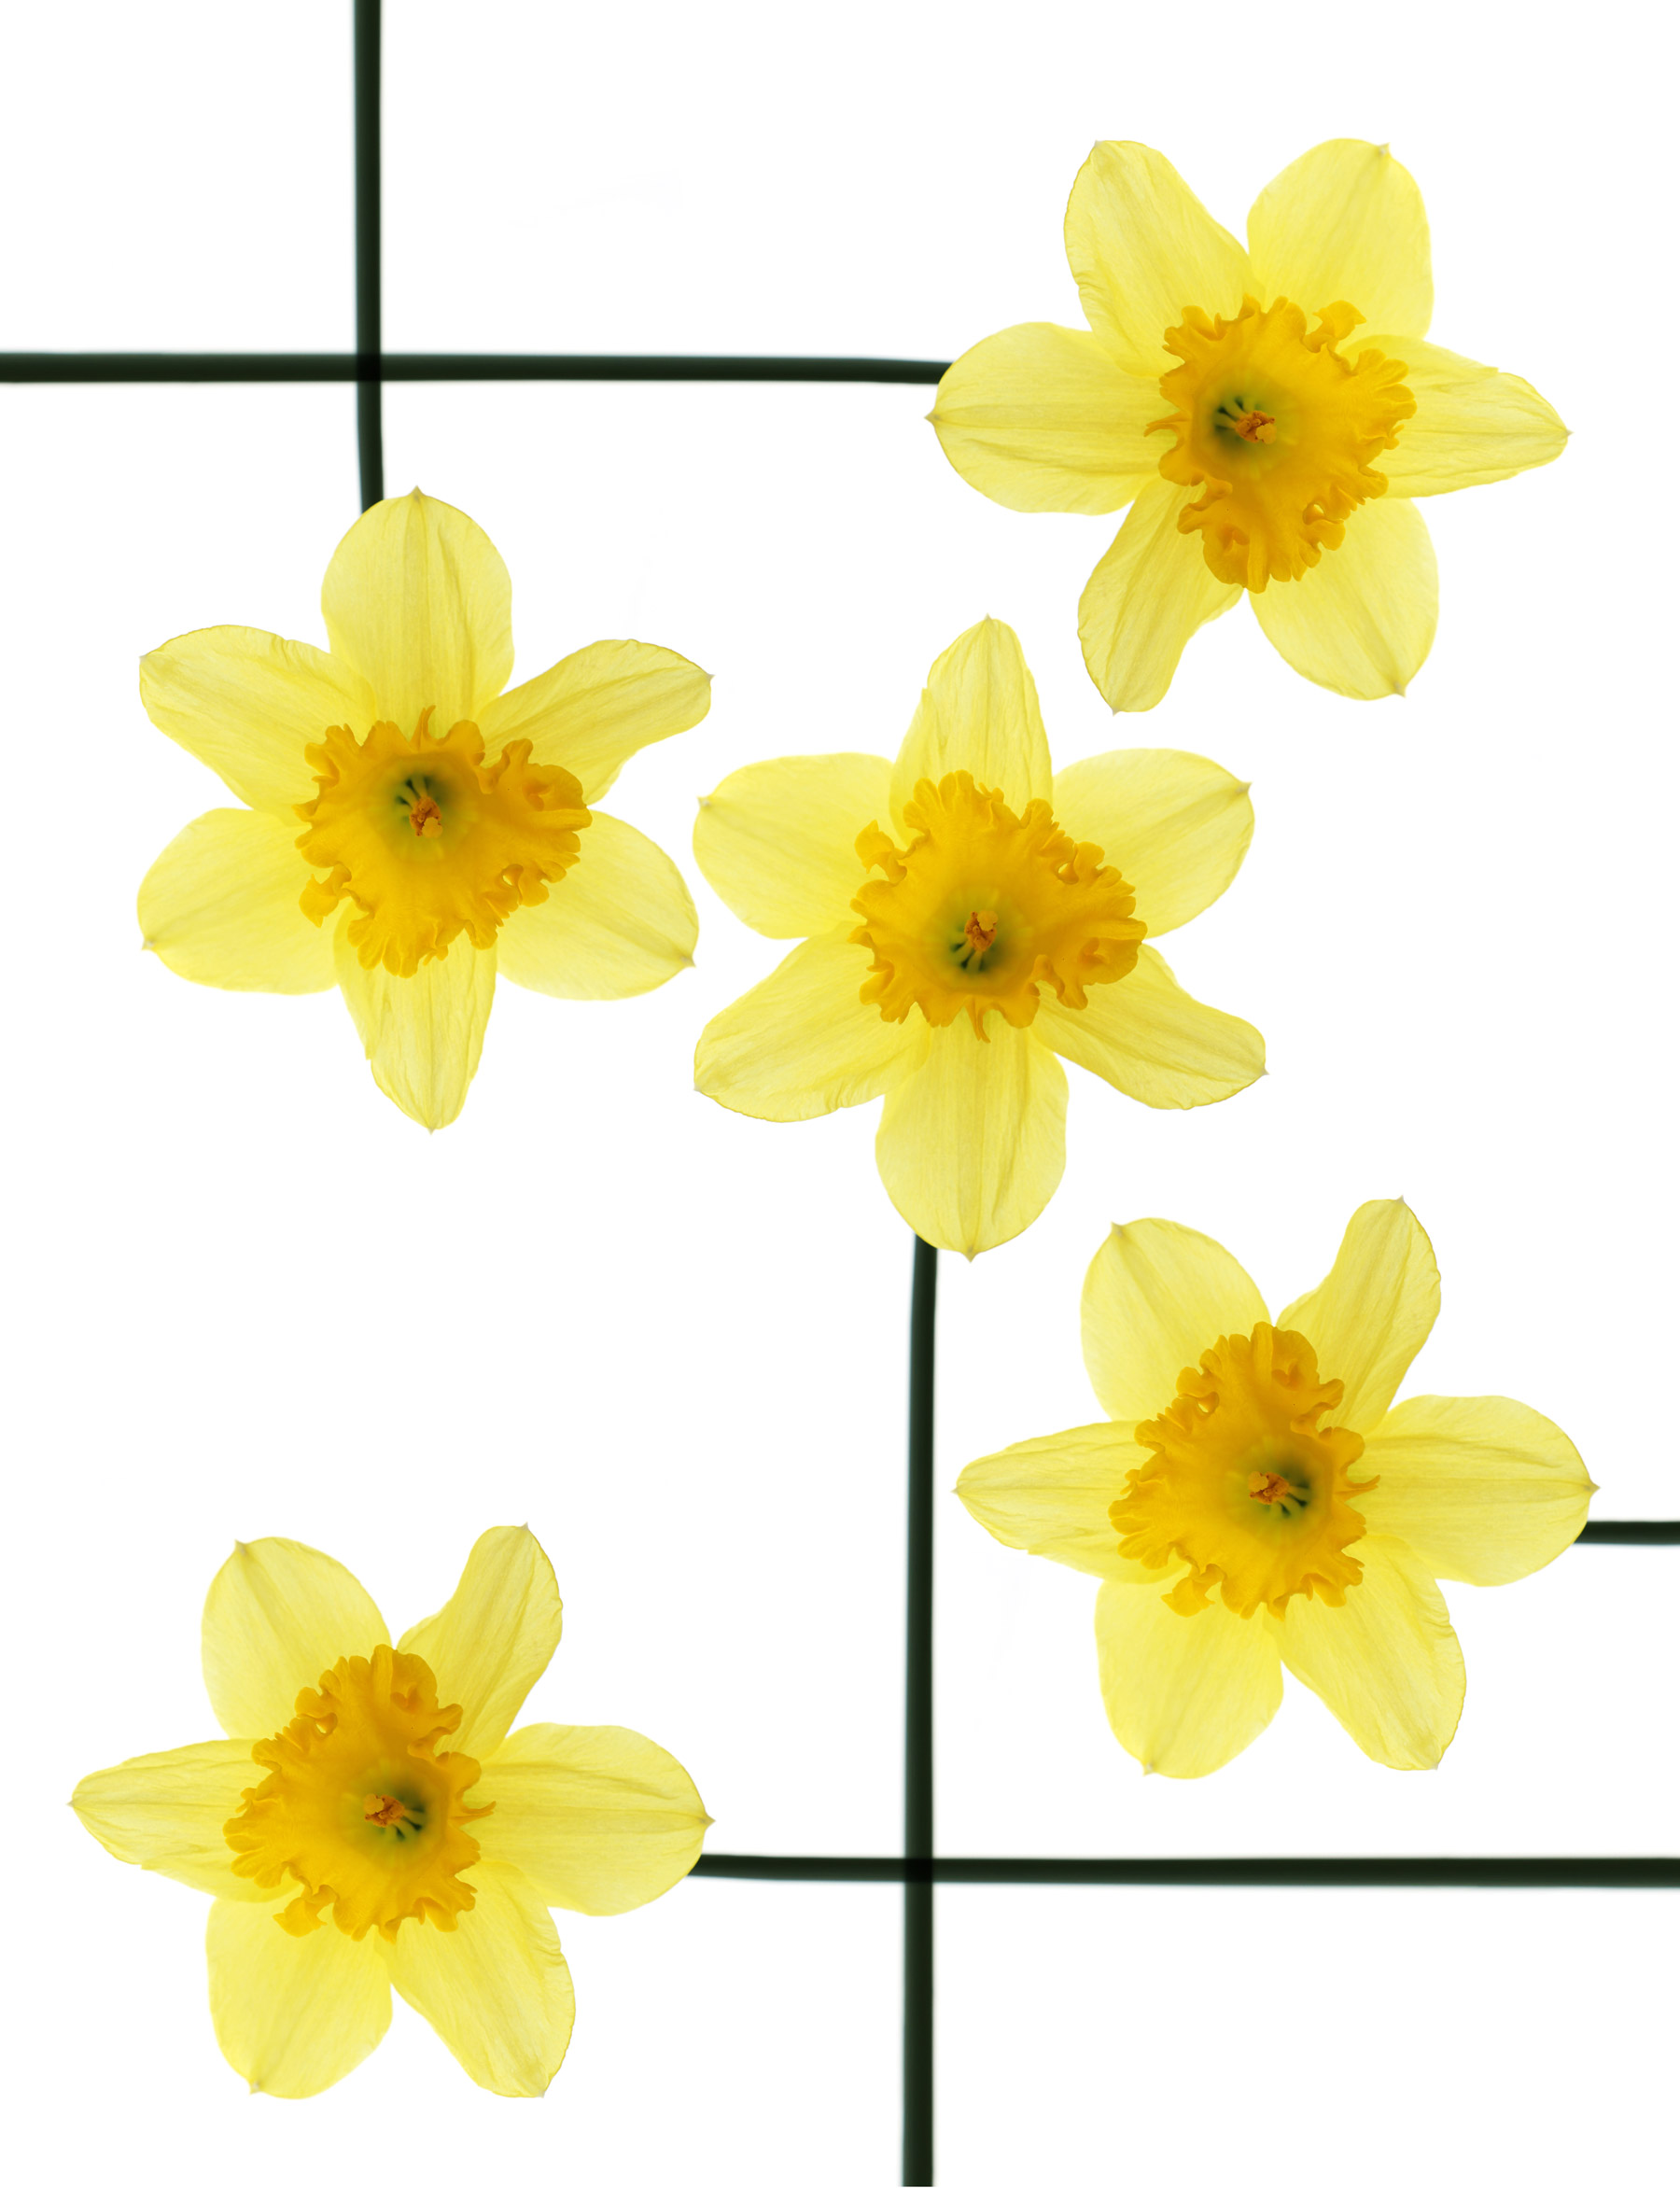 the unbearable happiness of daffodils